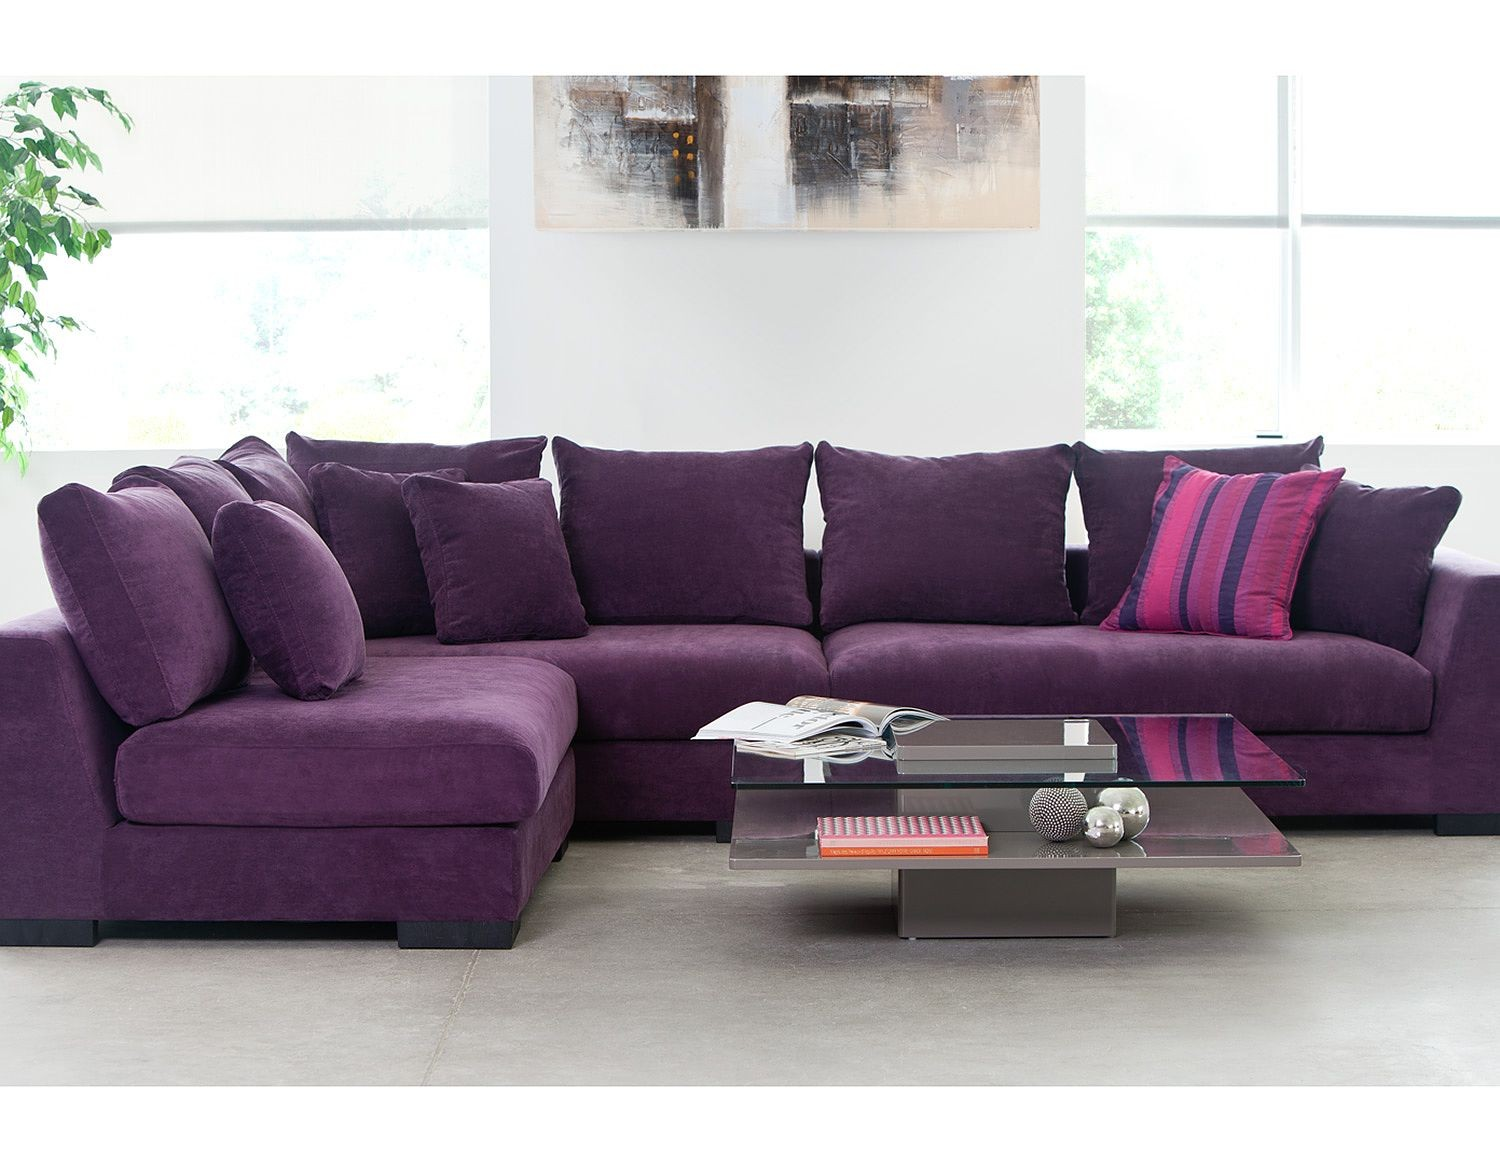 Warm Purple Sofa to Complete Your Living Room Decor: Purple Sofa | Living Room With Purple Sofa | Aubergine Couch